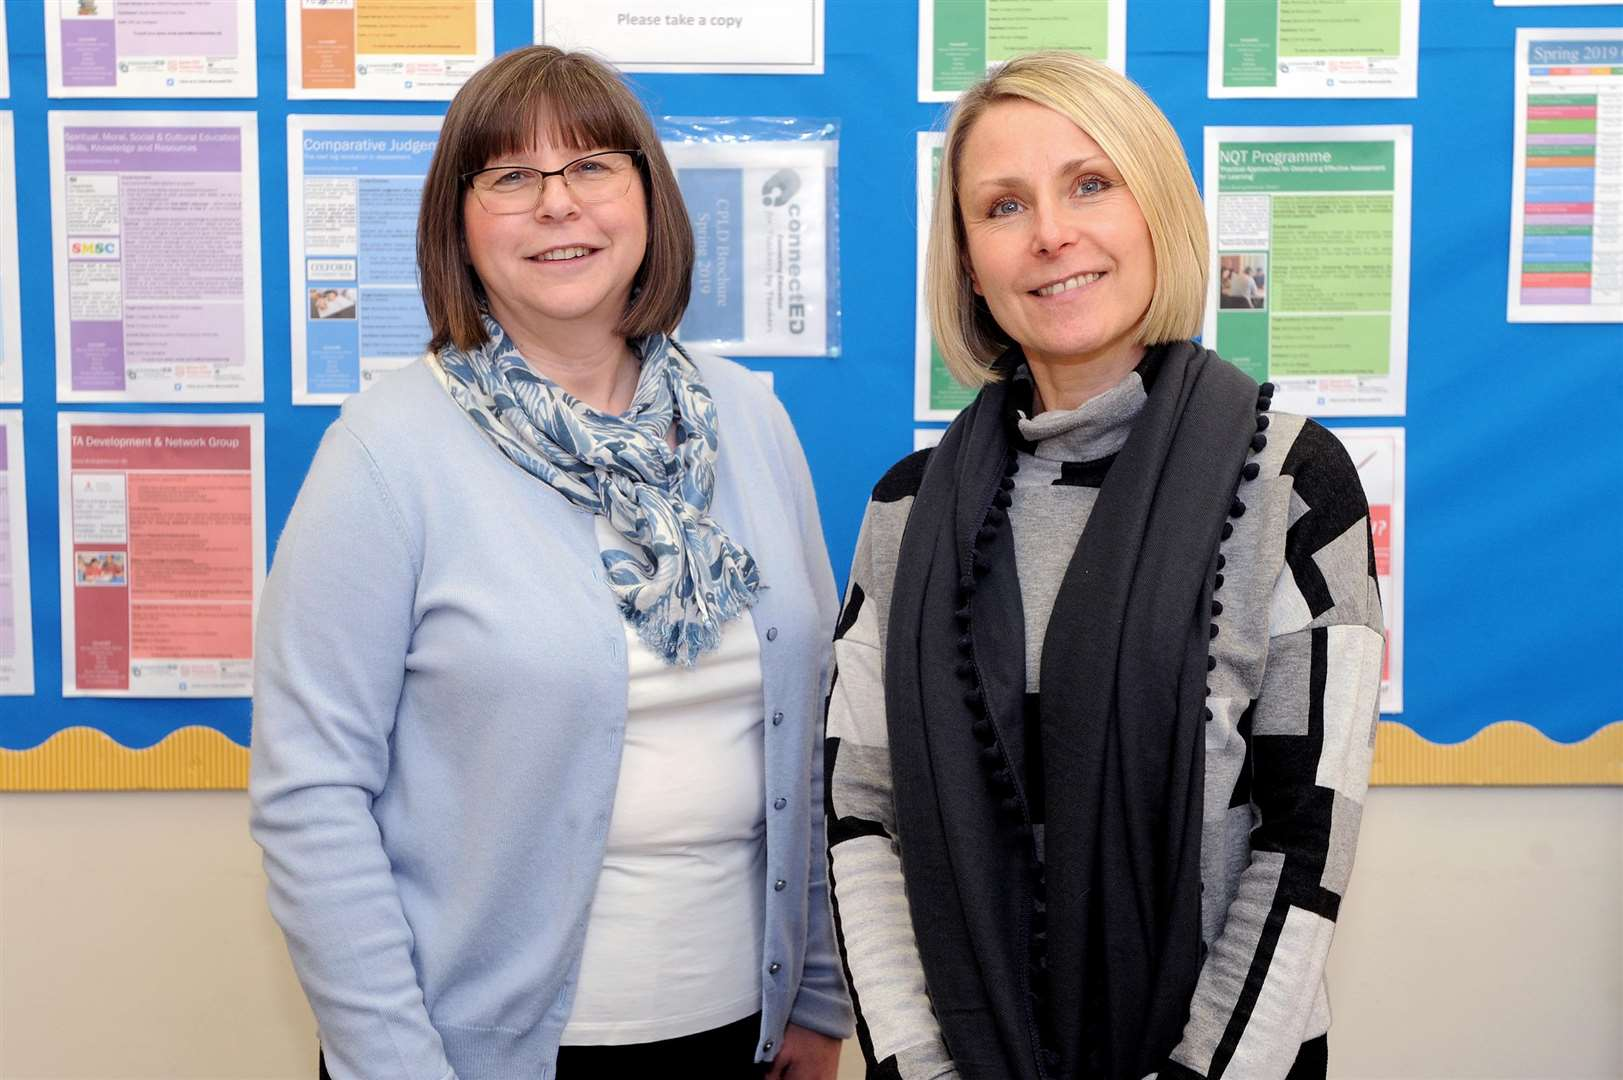 Jacqui Watkins, director of ConnectED Teaching School Alliance and Helen Ashe, headteacher of Barrow Primary. Picture: Mecha Morton.